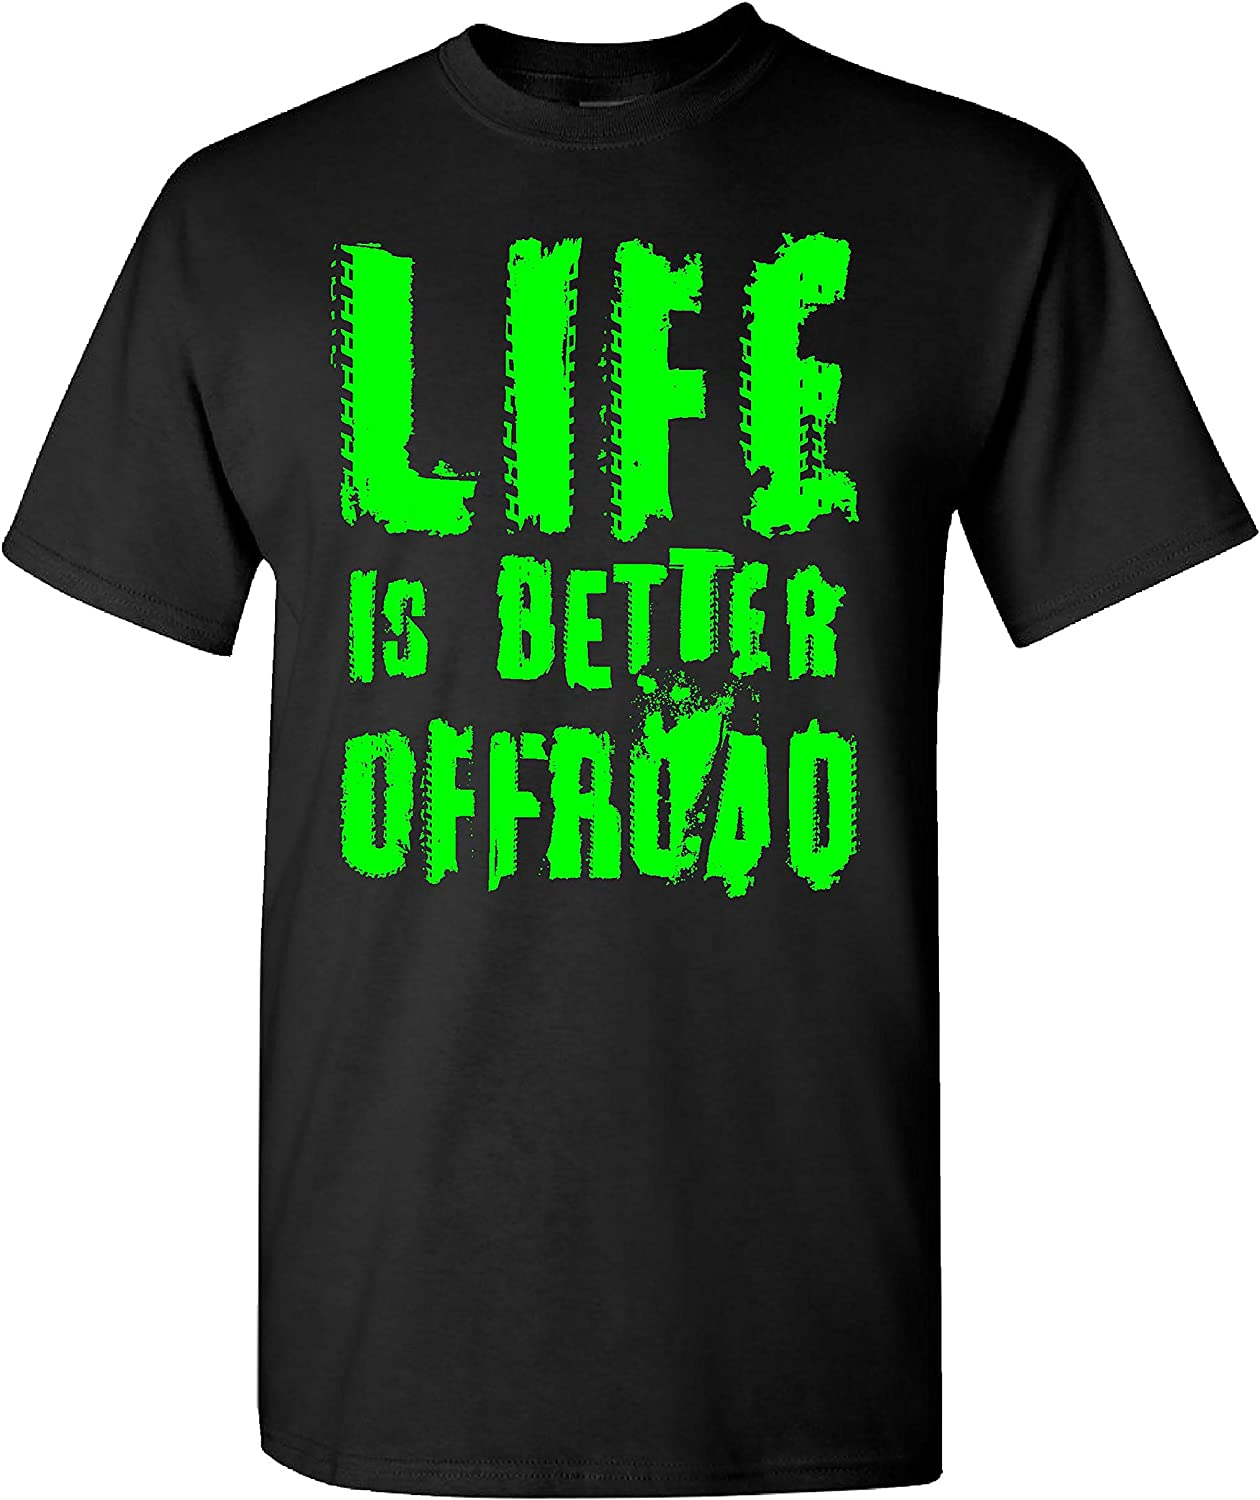 Extreme Muddin Life is Better Offroad on a Black T Shirt